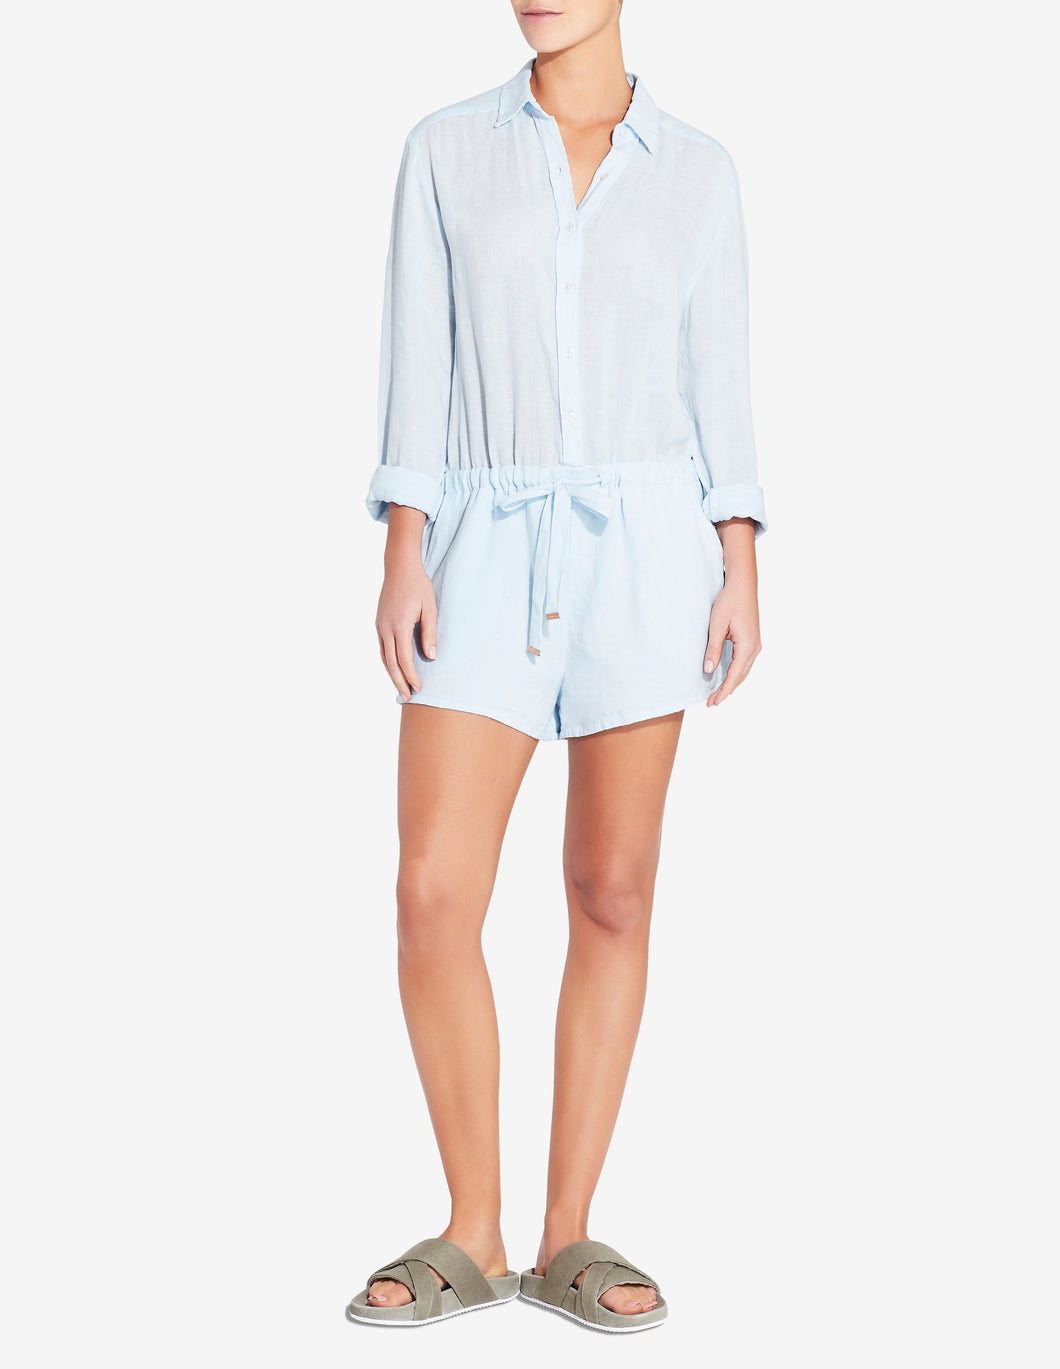 SLIM SHIRT PLAYSUIT - LIGHT BLUE